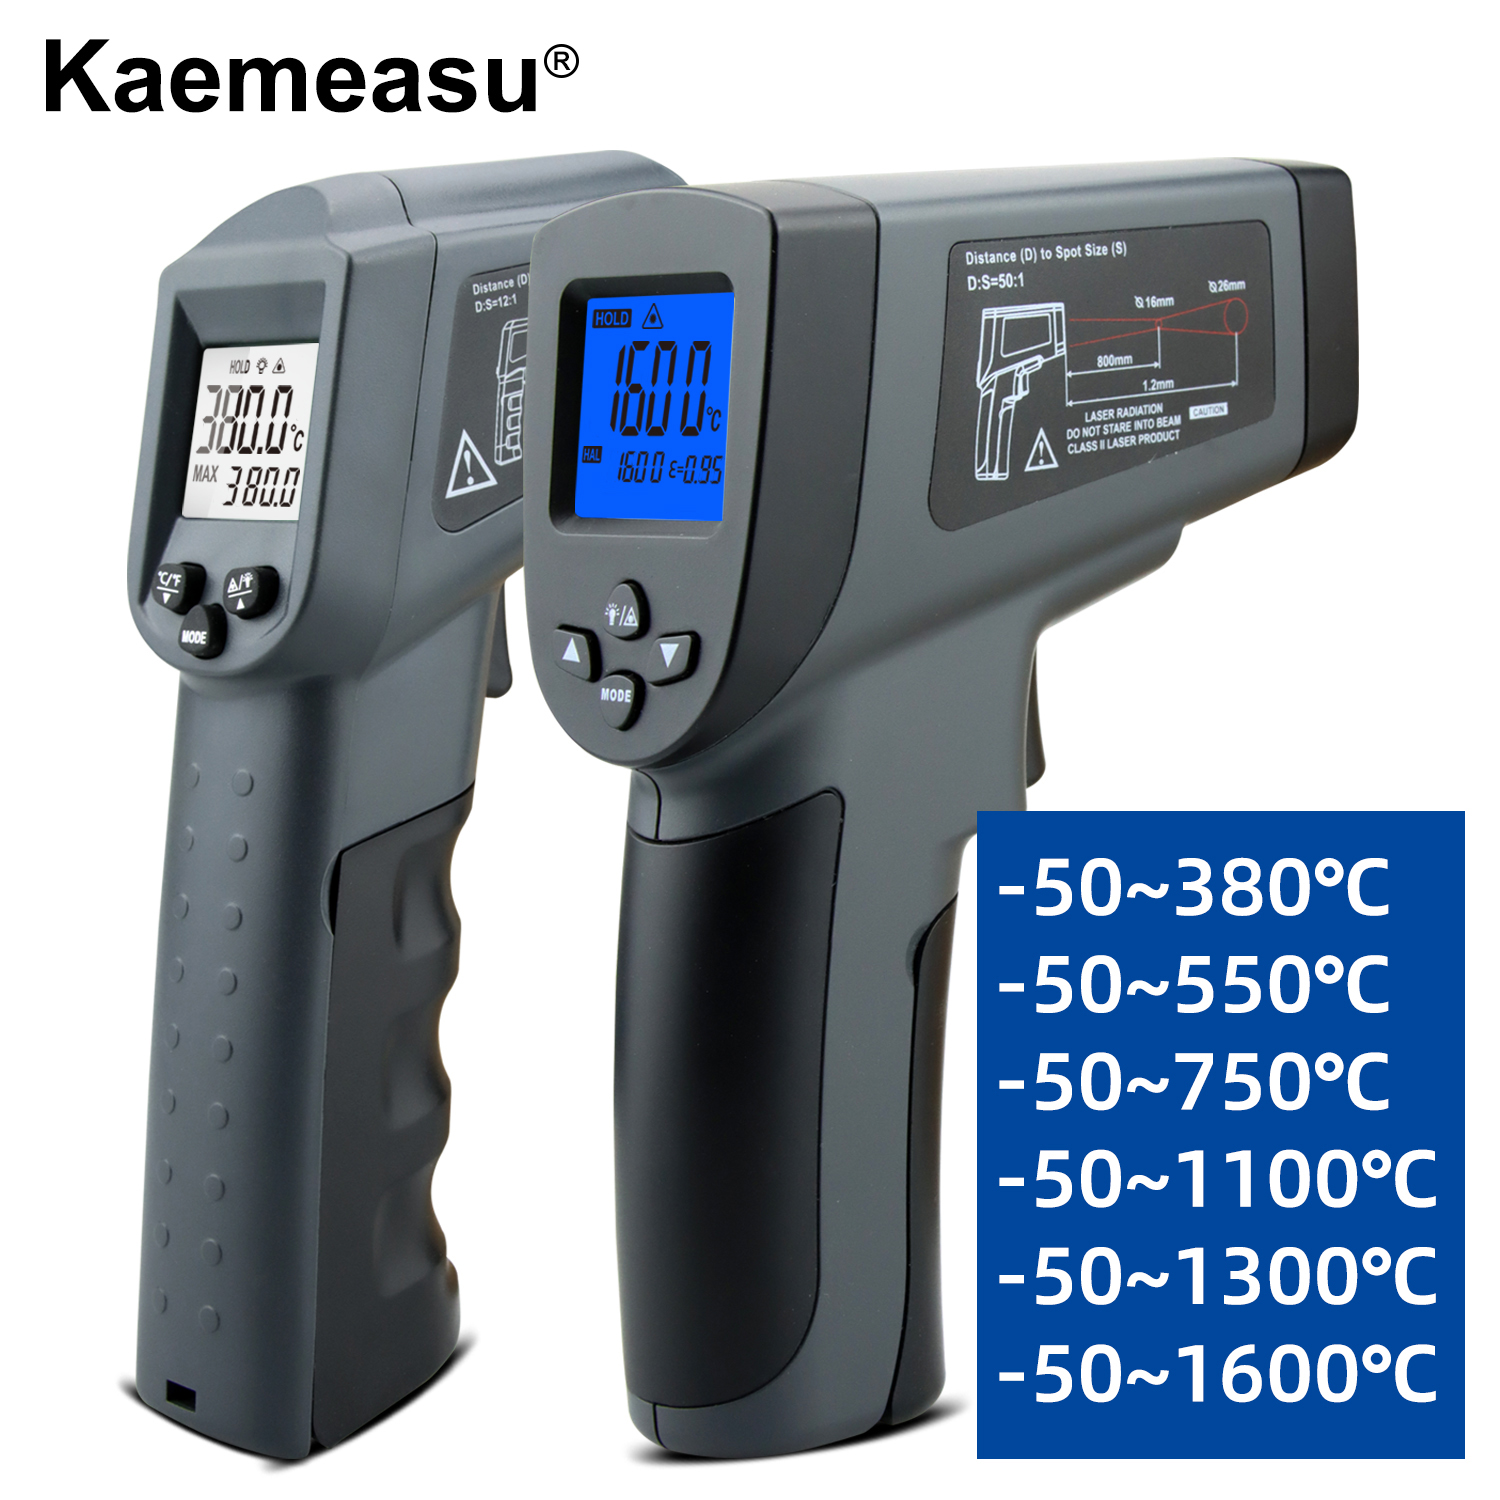 Kaemeasu Digitale Infrarood Thermometer -50 ~ 1600 Meetbereik, Non-contact, Veiligheid, Koken, industriële Elektronische Thermometer Pistool 1